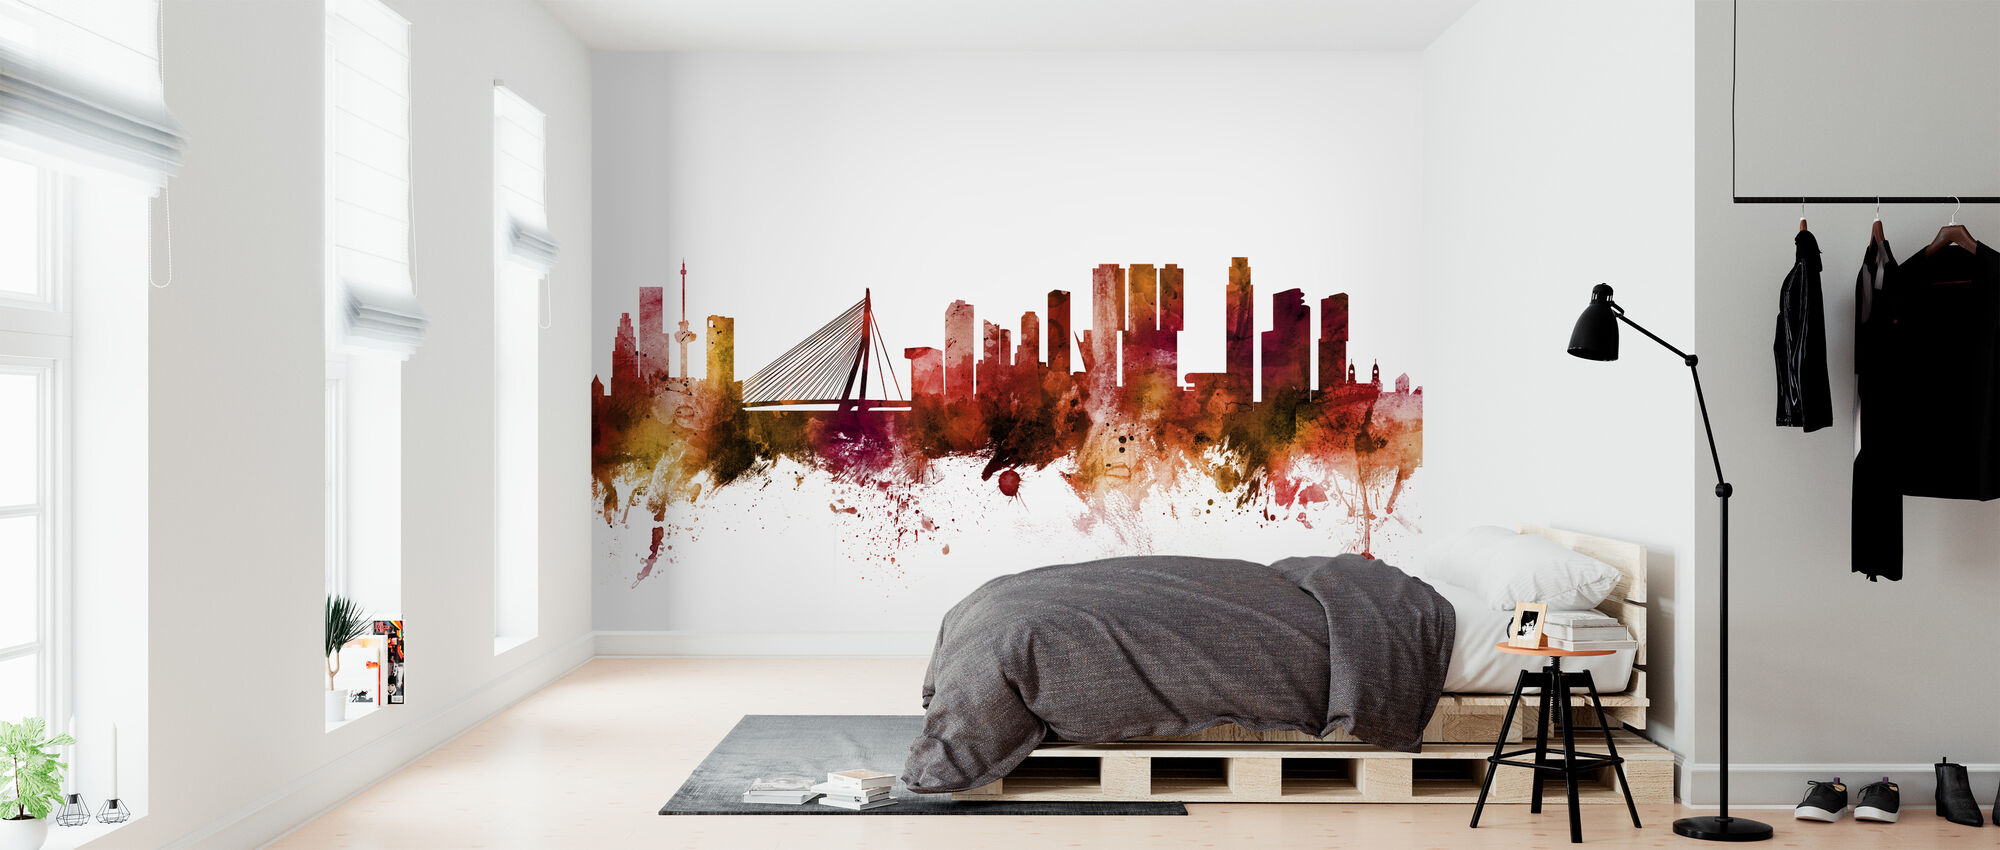 Rotterdam The Netherlands Skyline - Wallpaper - Bedroom